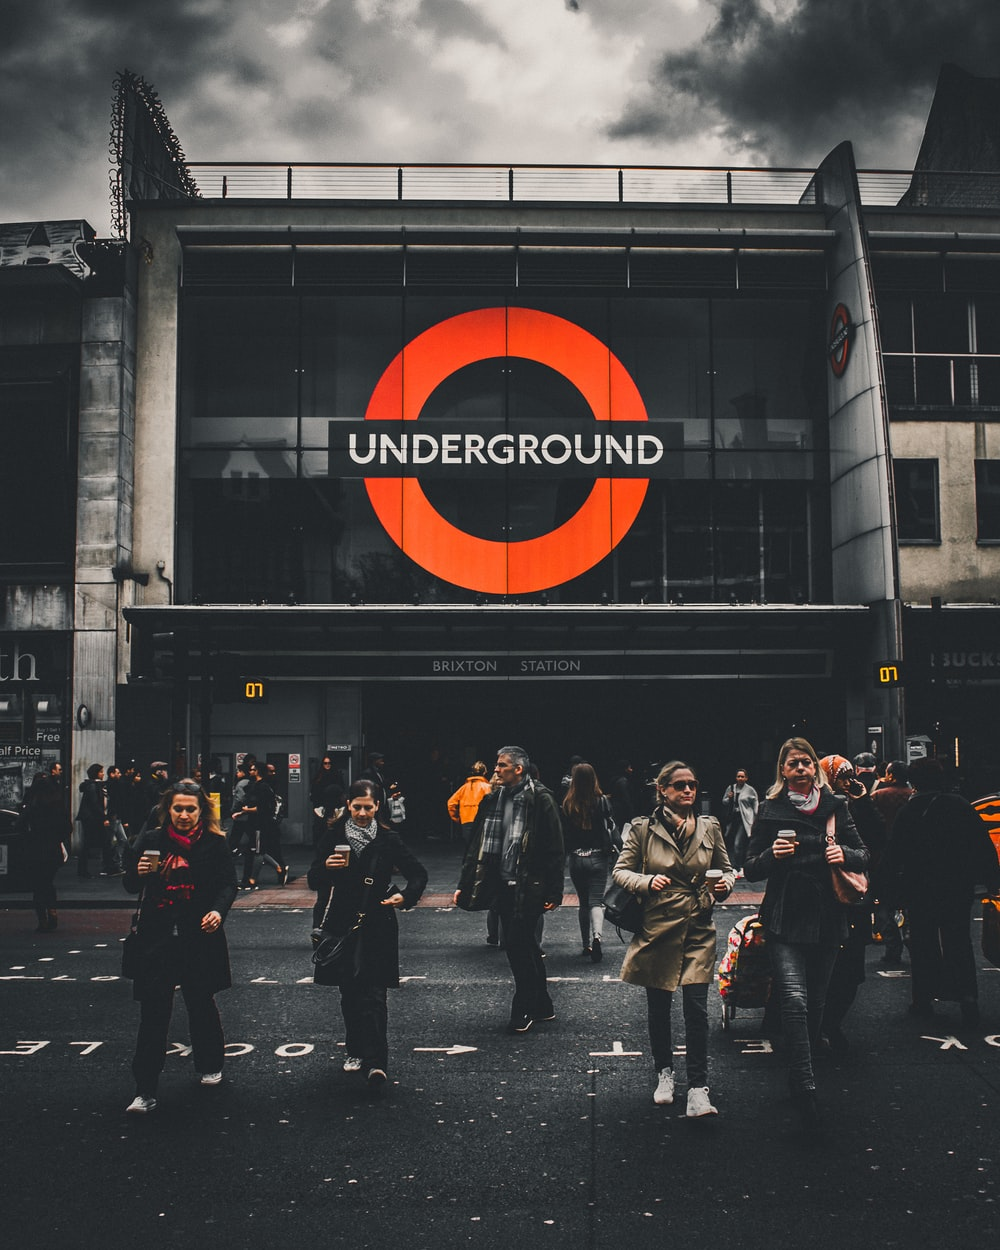 people walking in front of Underground labeled building